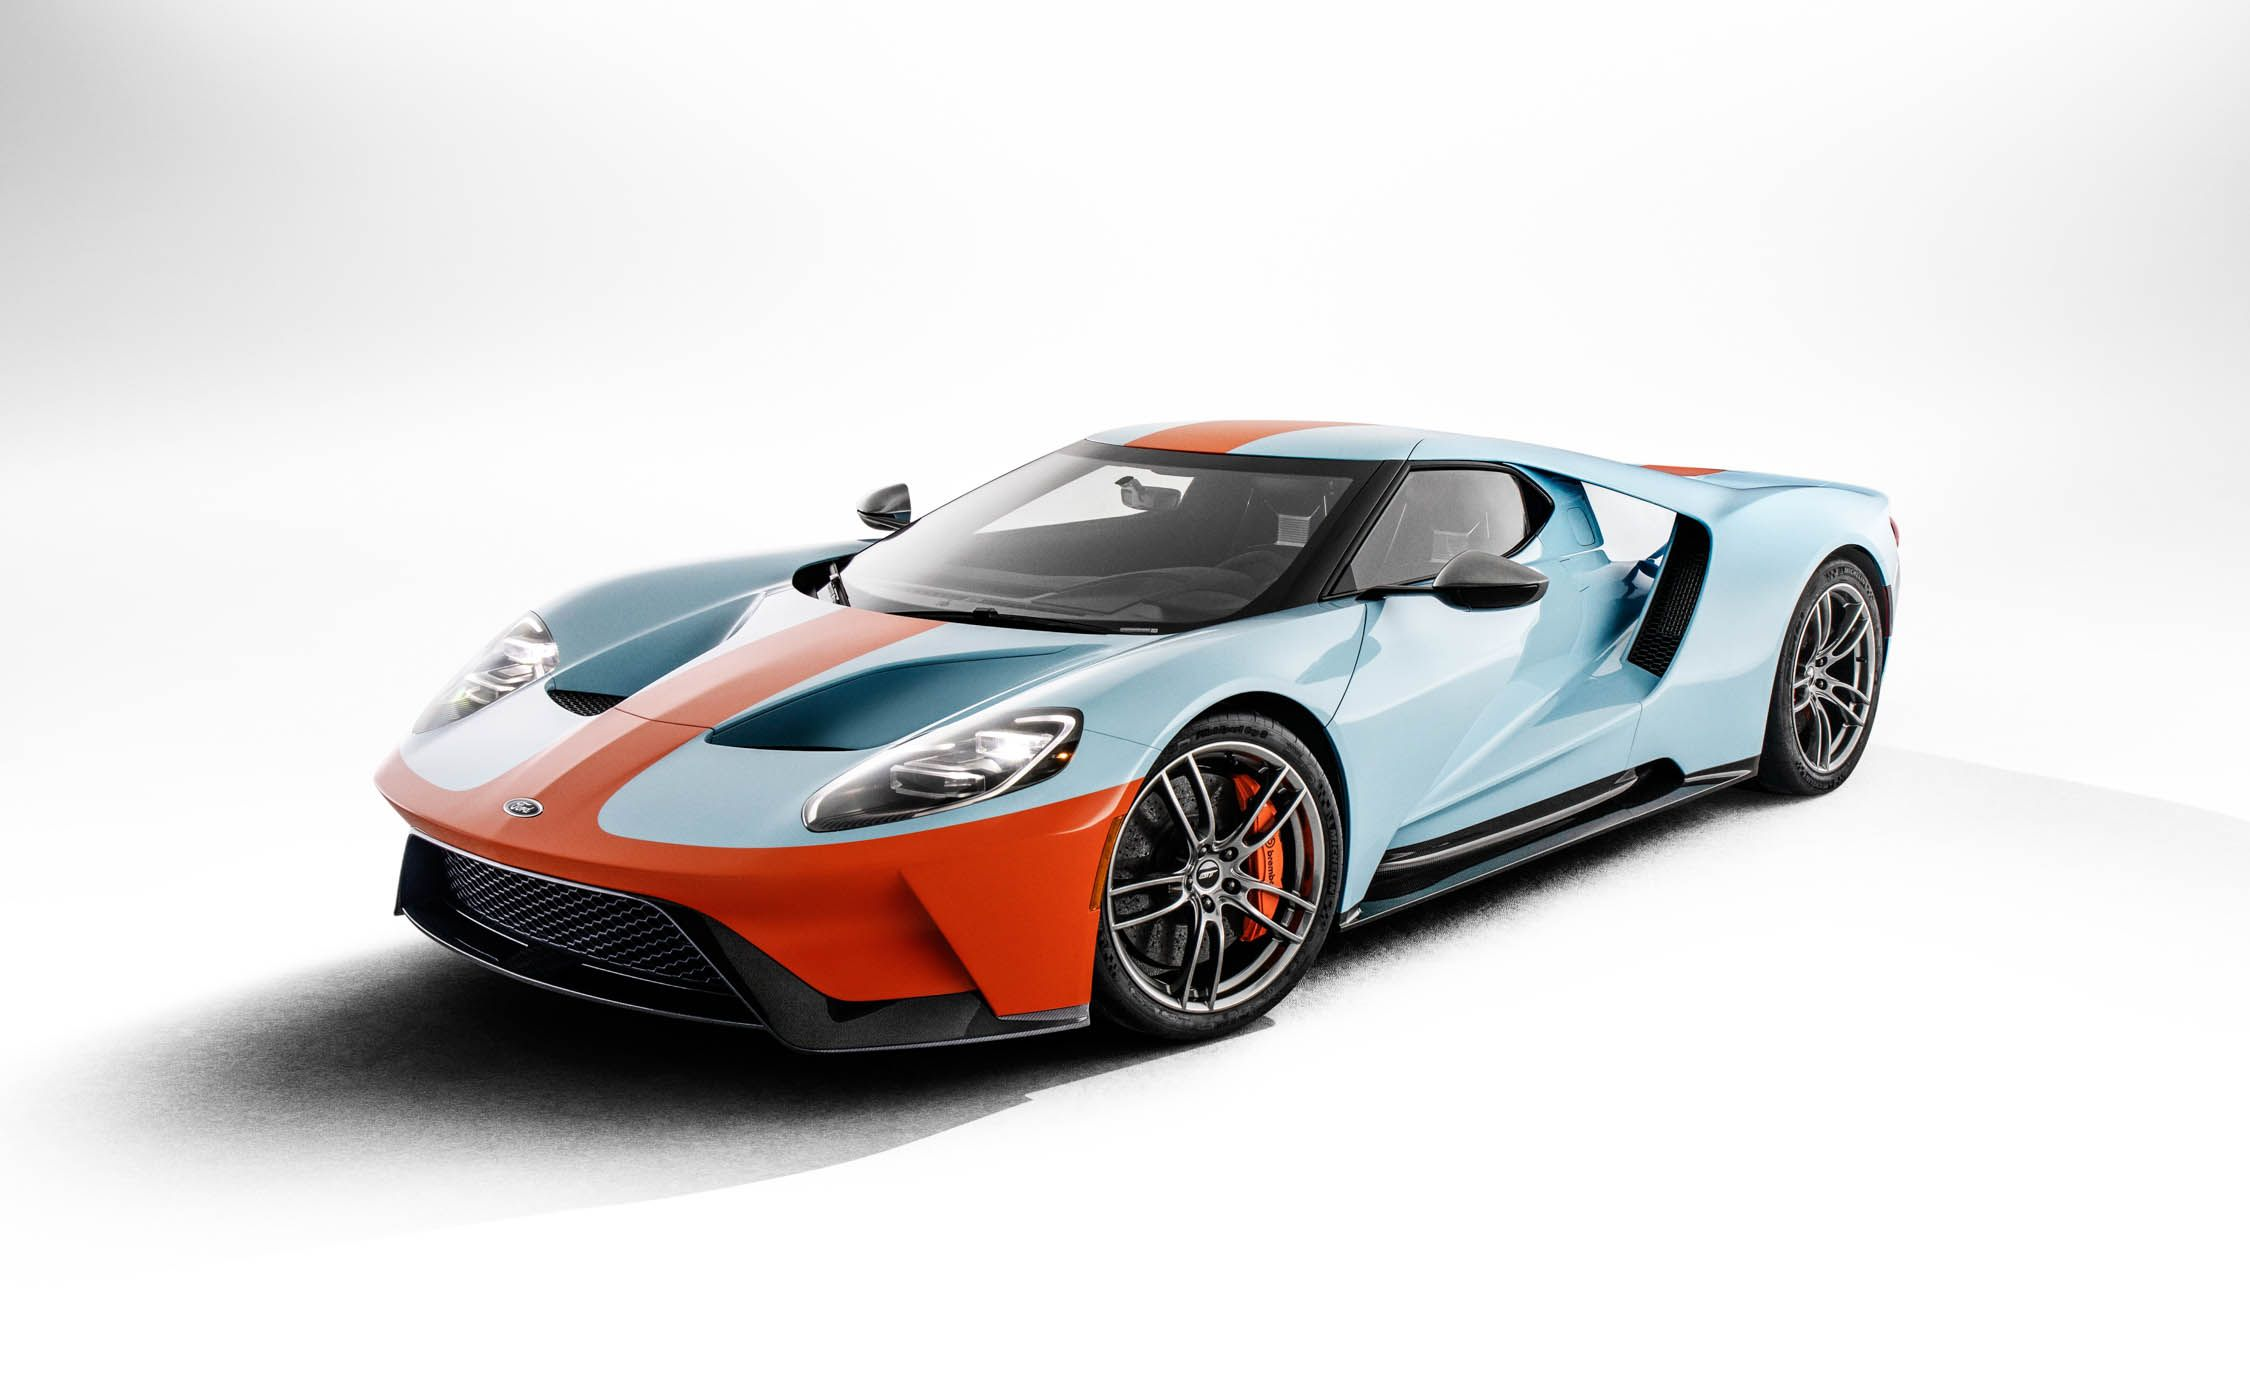 Ford Gt Heritage Edition Wears Gulf Livery Of Le Mans Winning Gt